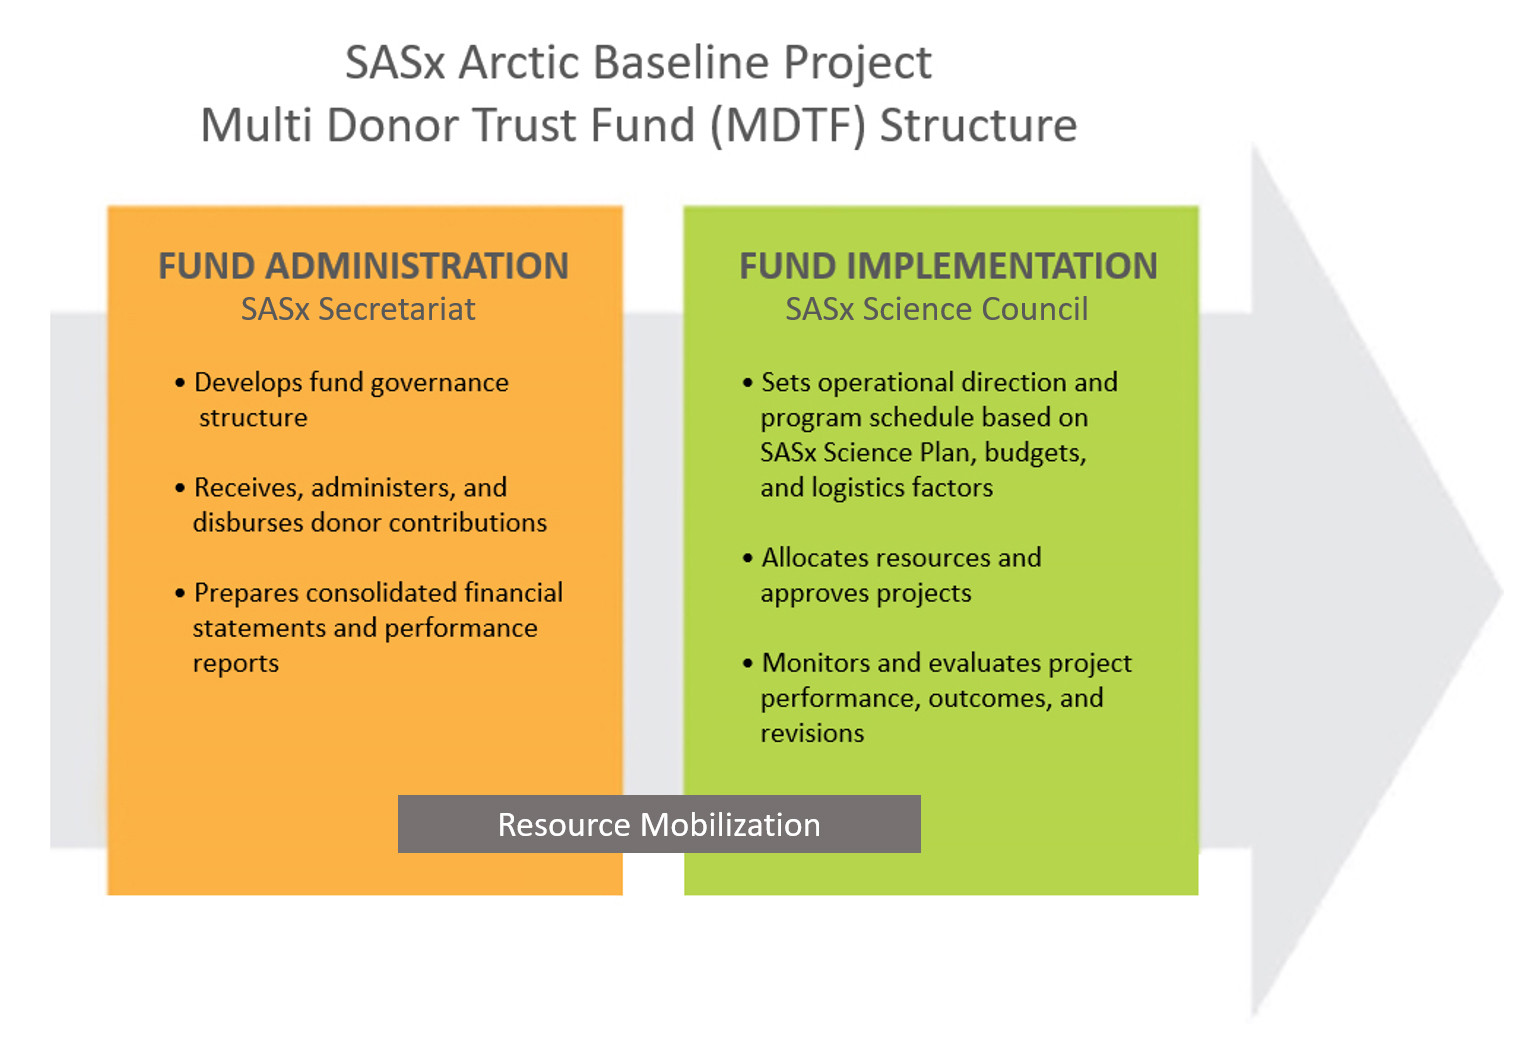 Figure 1: Proposed Multi Donor Trust Fund (MDTF) structure for the SASx Project Decade.